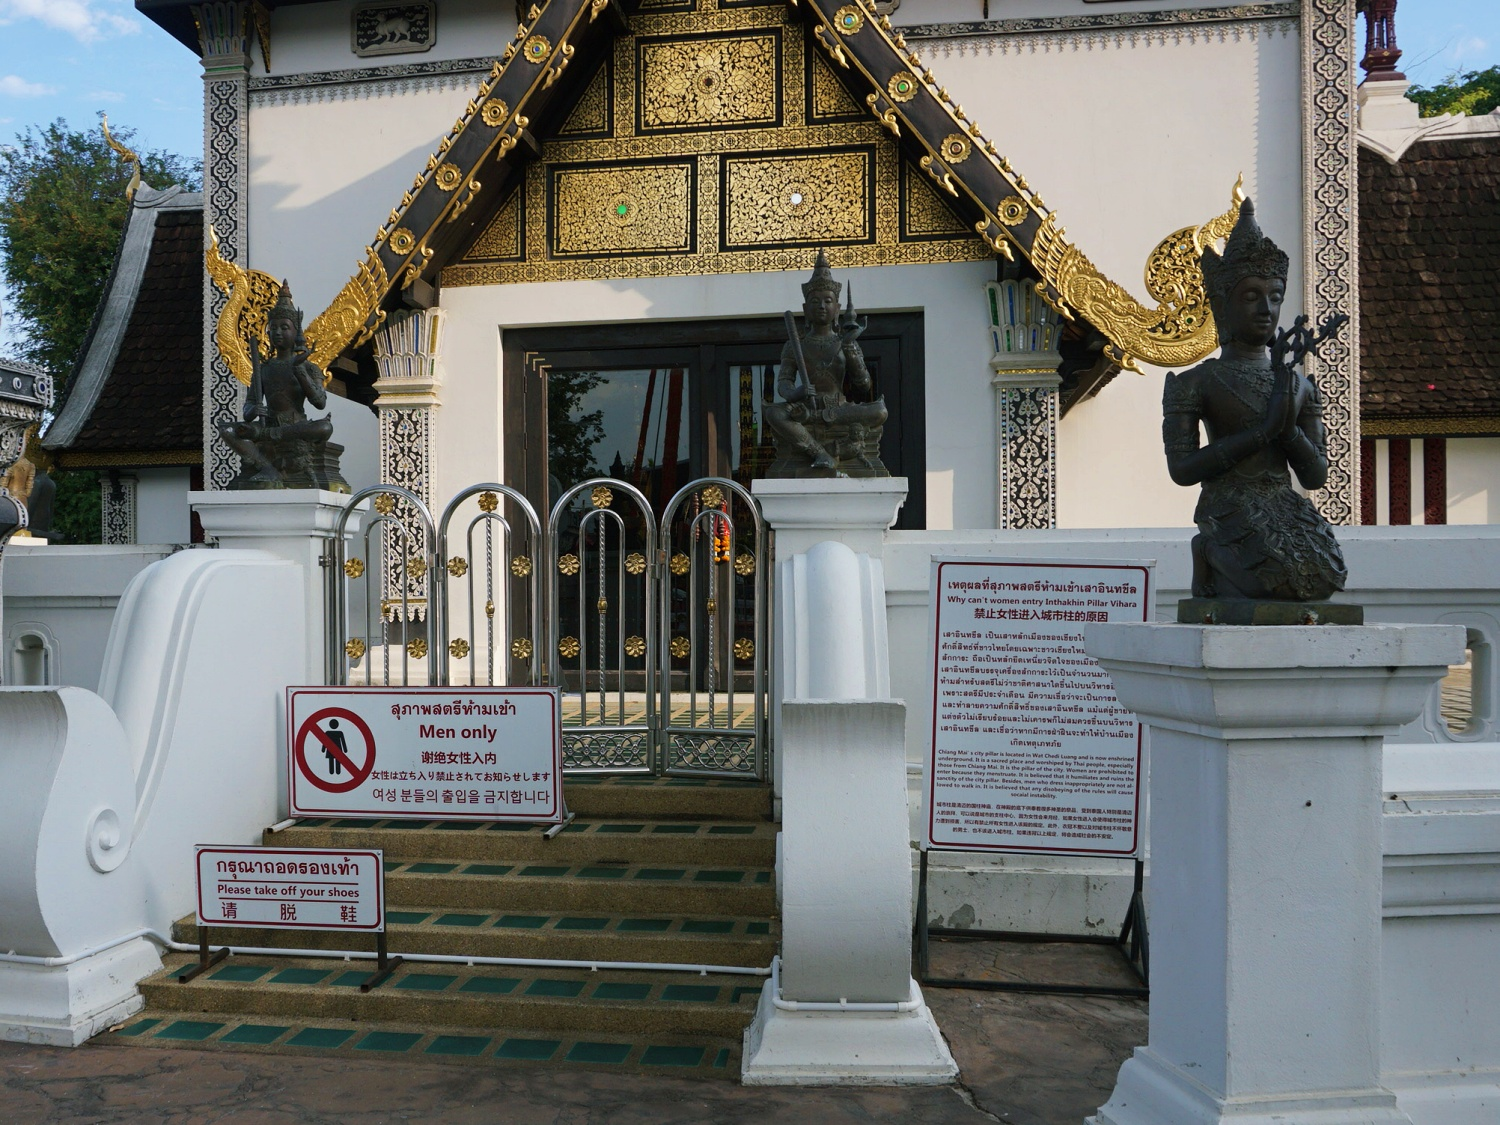 Chiang Mai men only temple